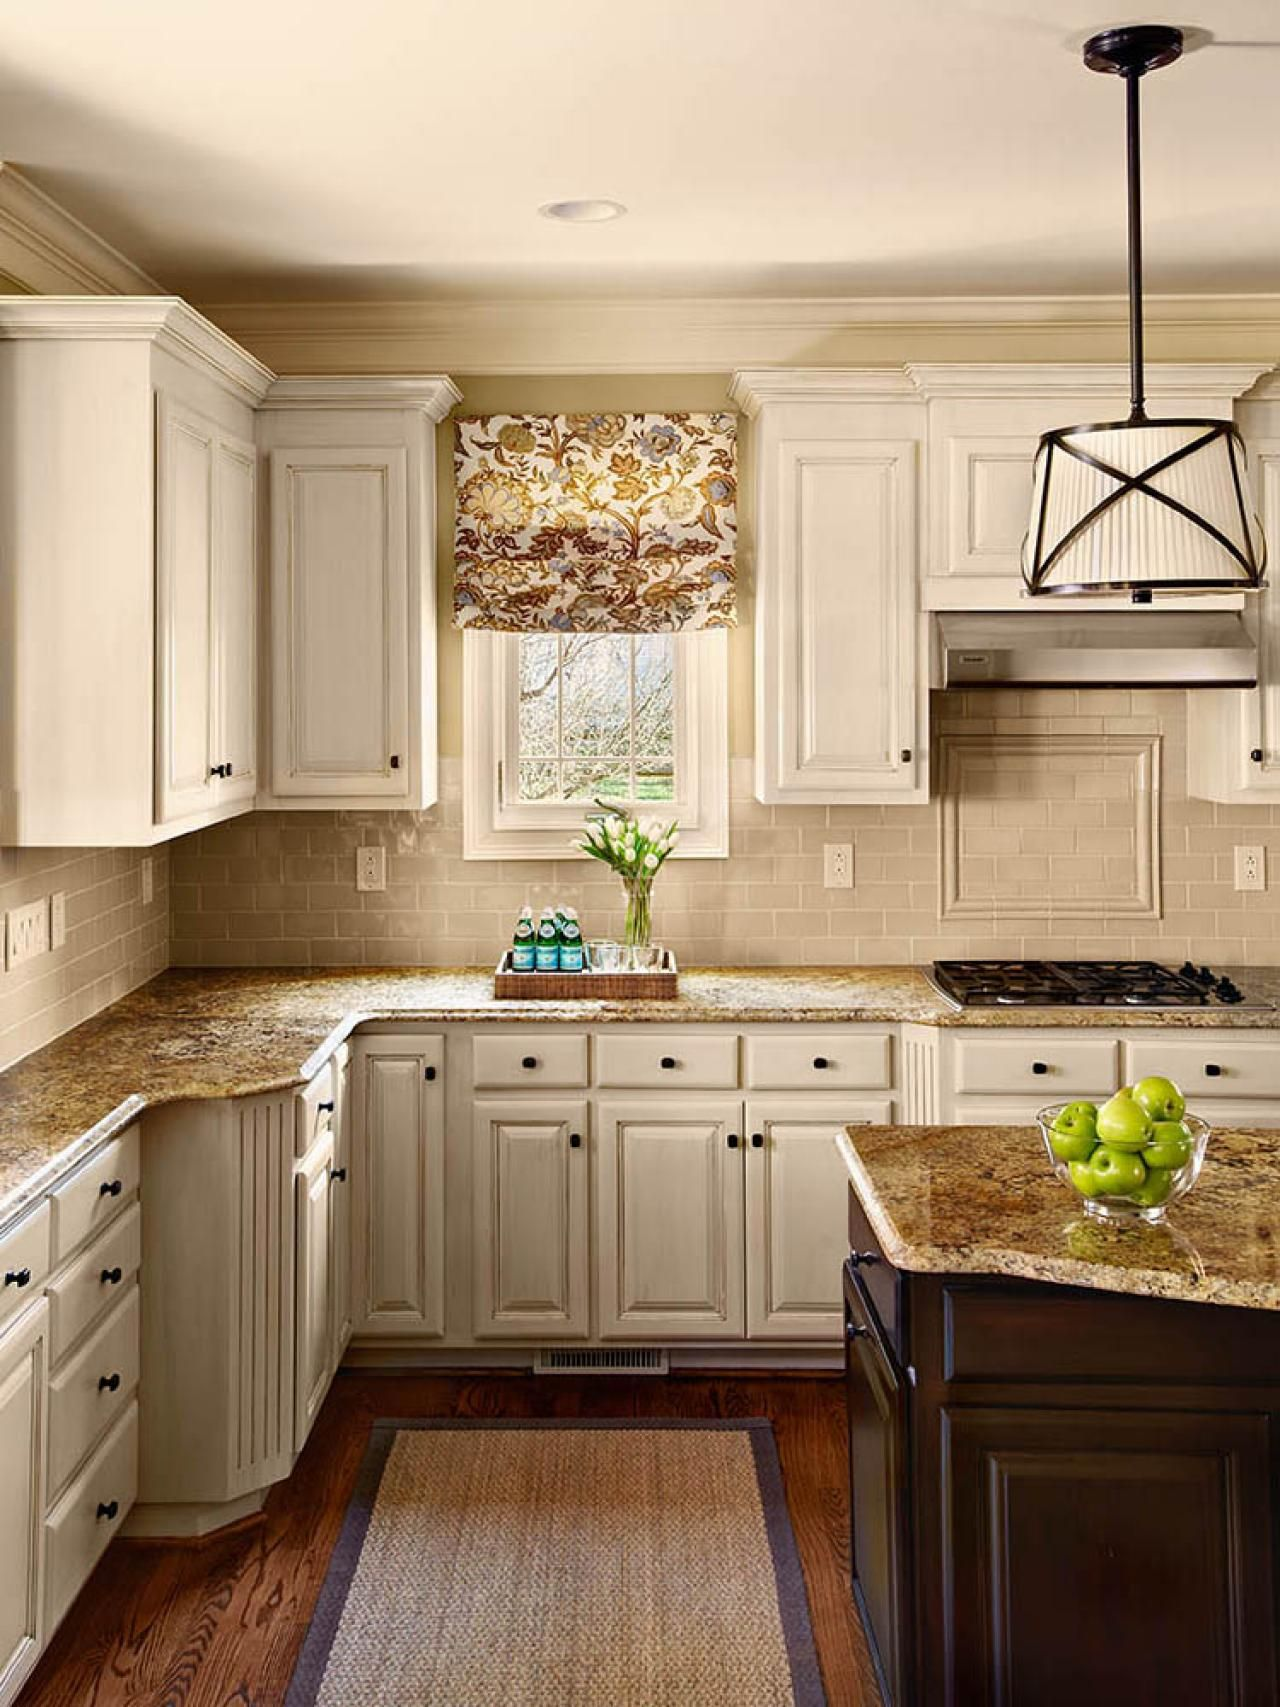 resurfacing kitchen cabinets pictures ideas from kitchen cabinet inspiration resurfacing on kitchen cabinets organization layout id=35789